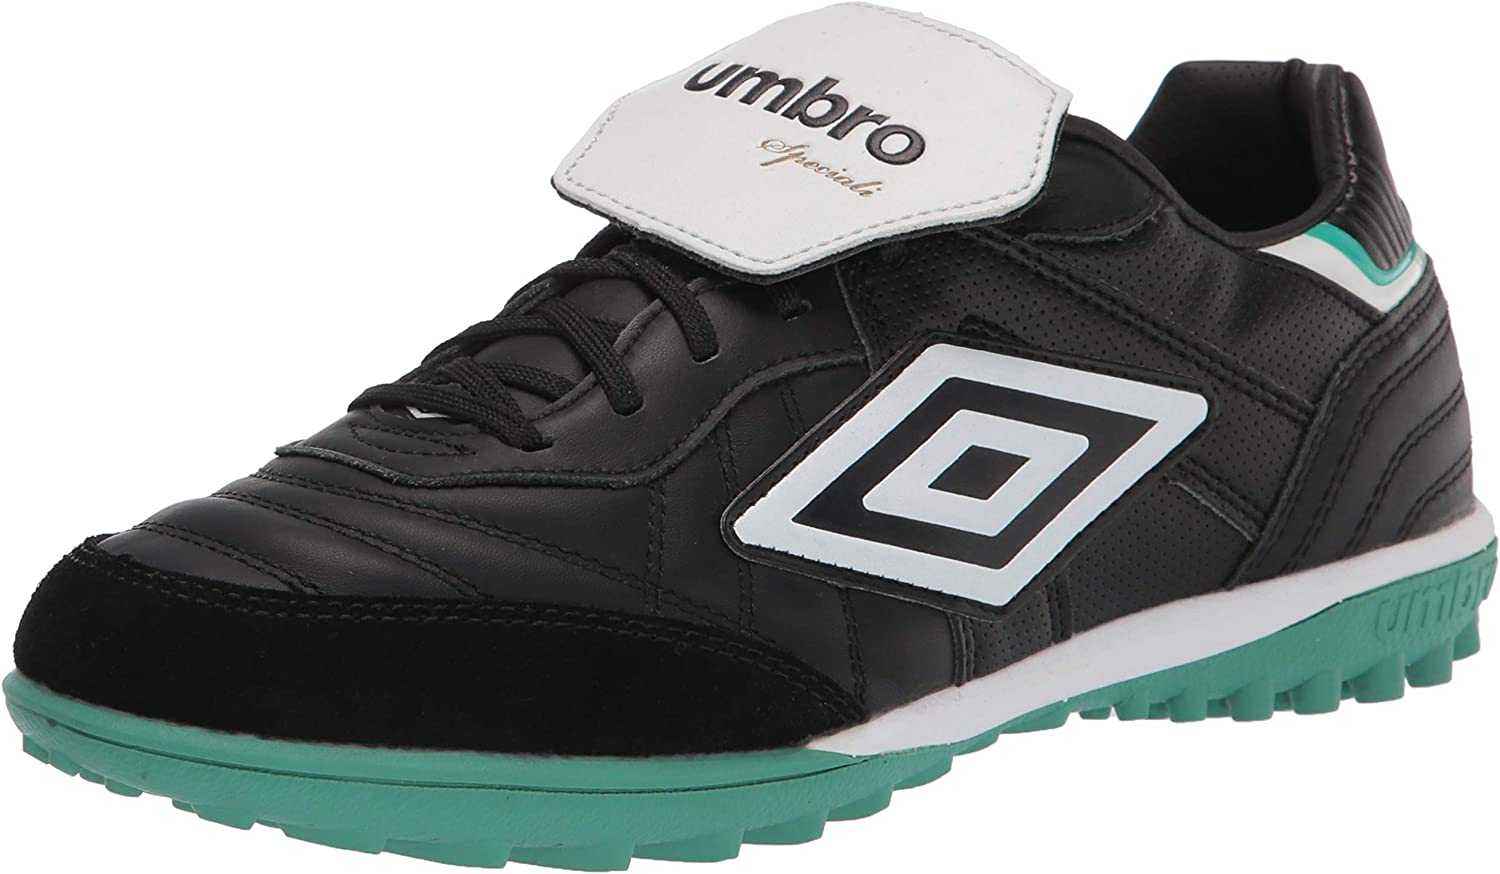 Umbro Unisex-Adult Max 72% OFF Speciali Eternal Club Animer and price revision Shoe Soccer Tf